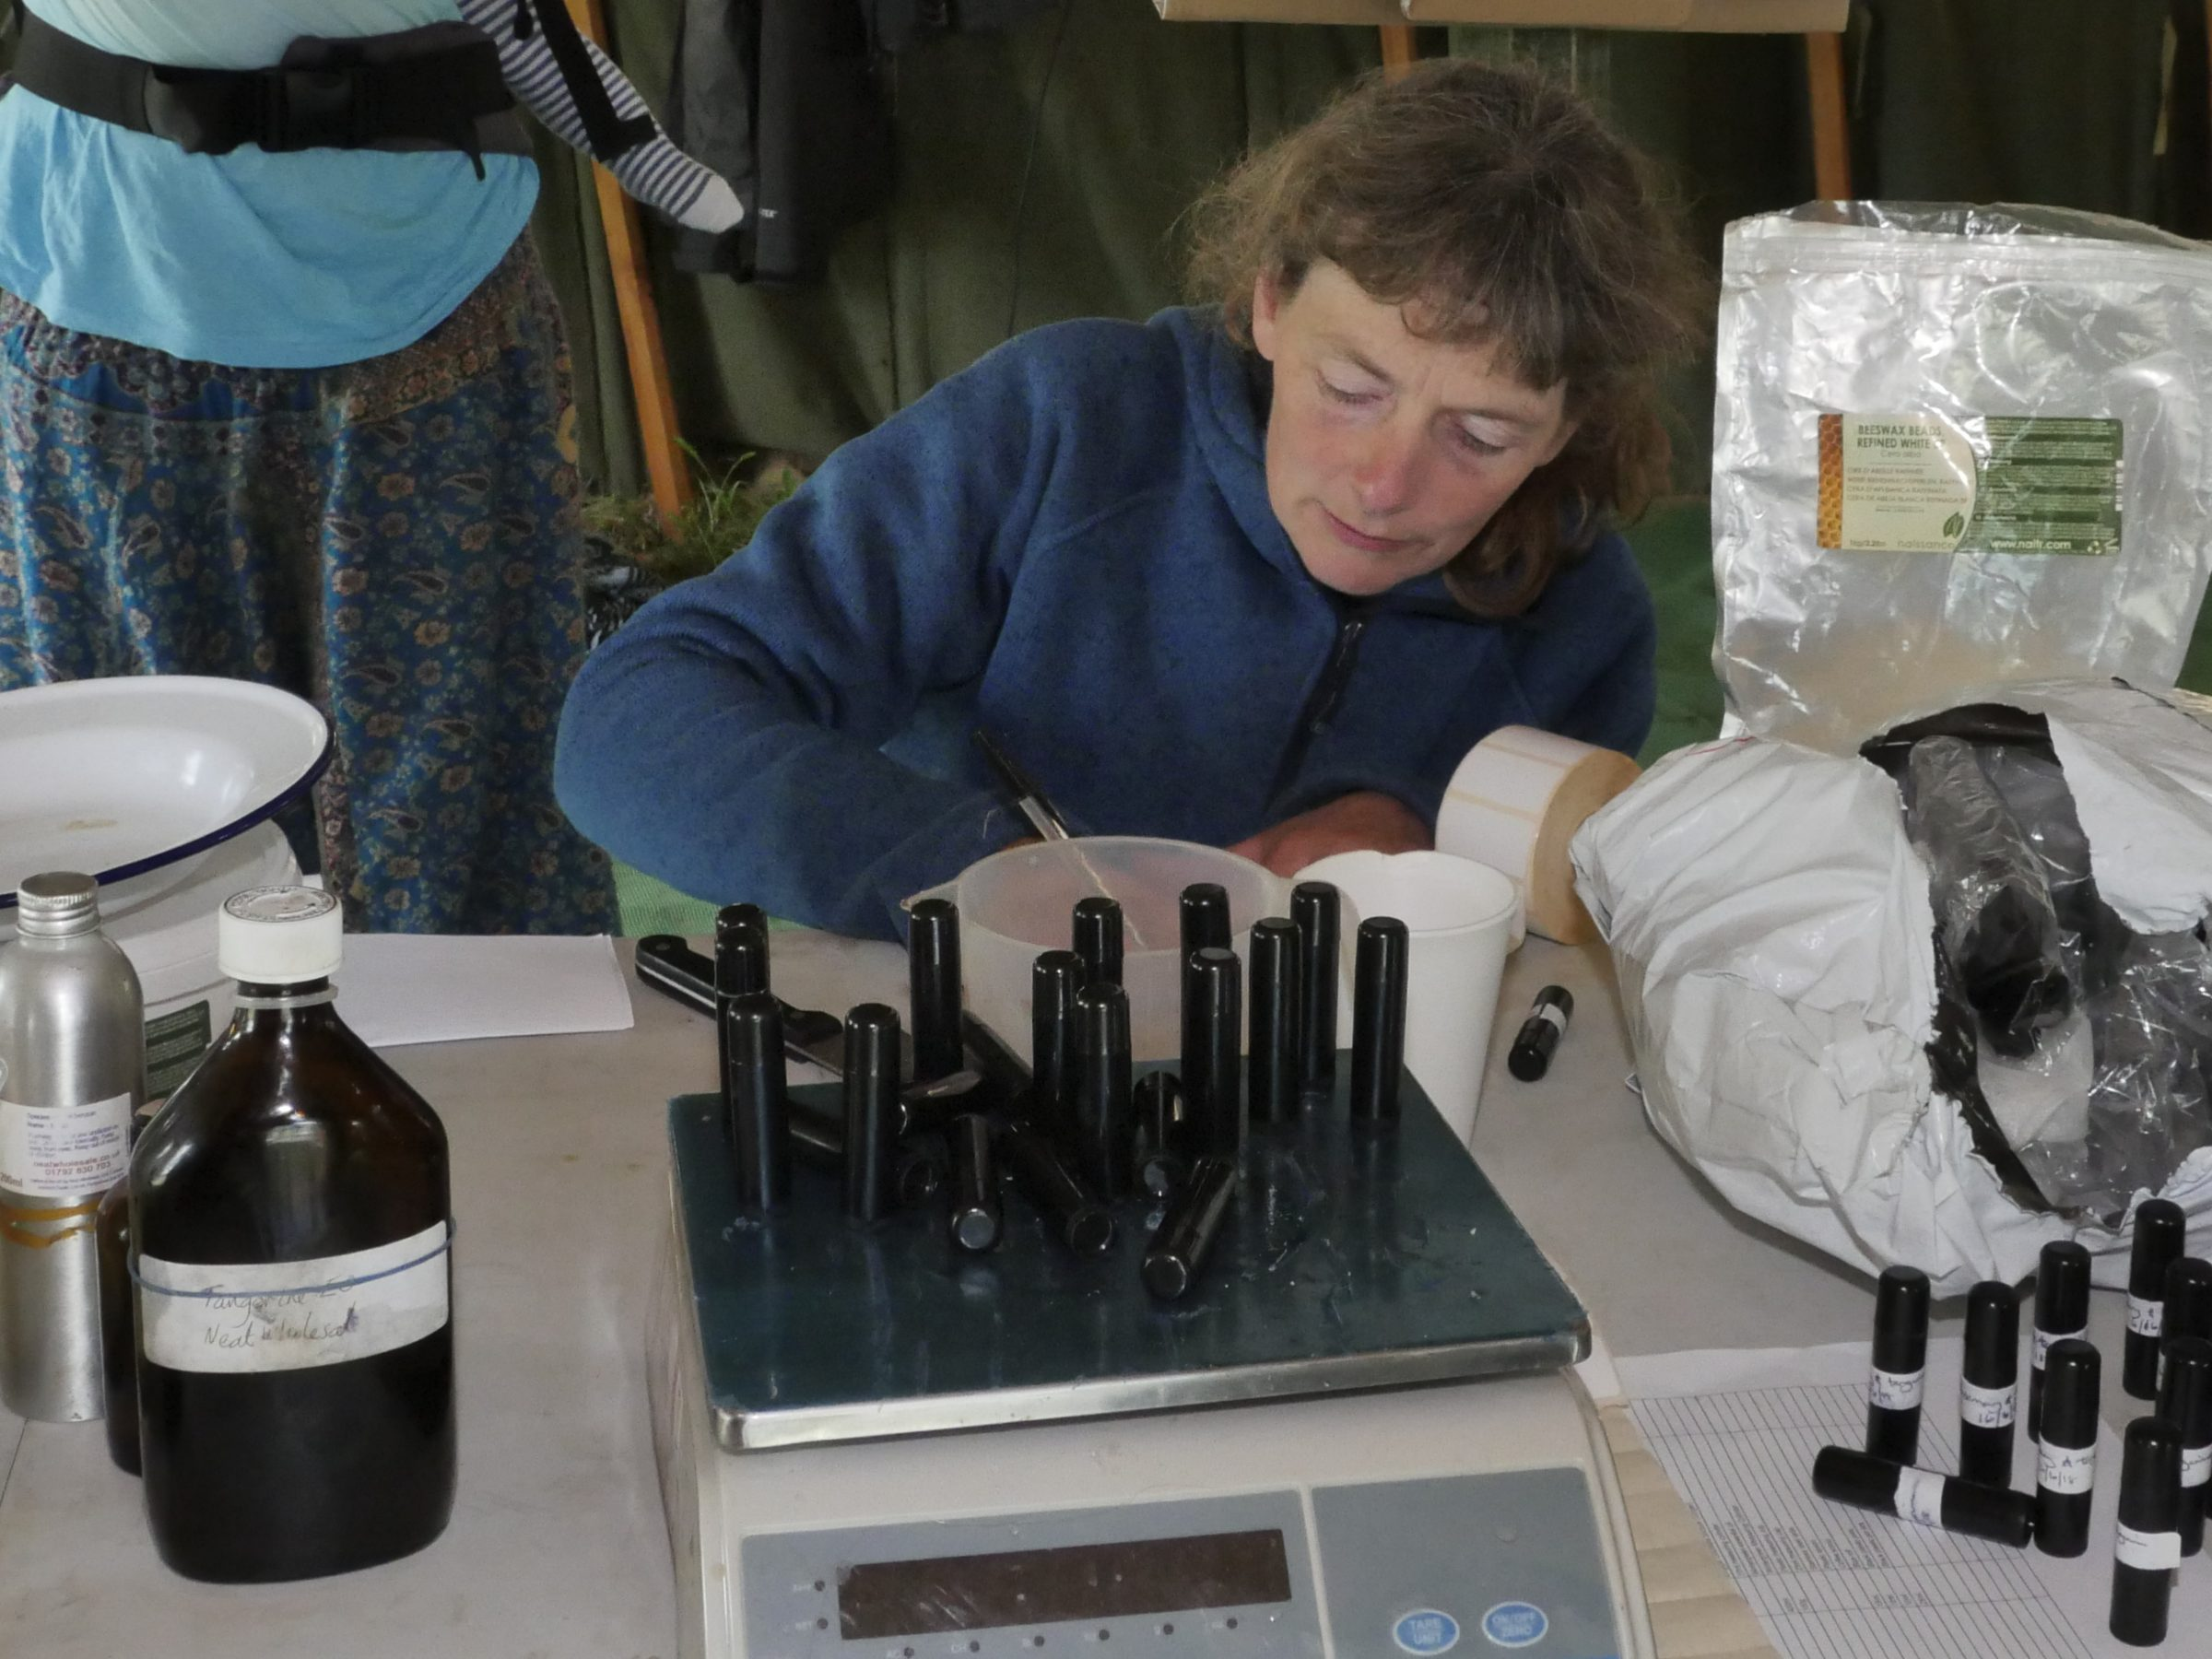 iain stewarts workshop a woman labels and weighs small bottles